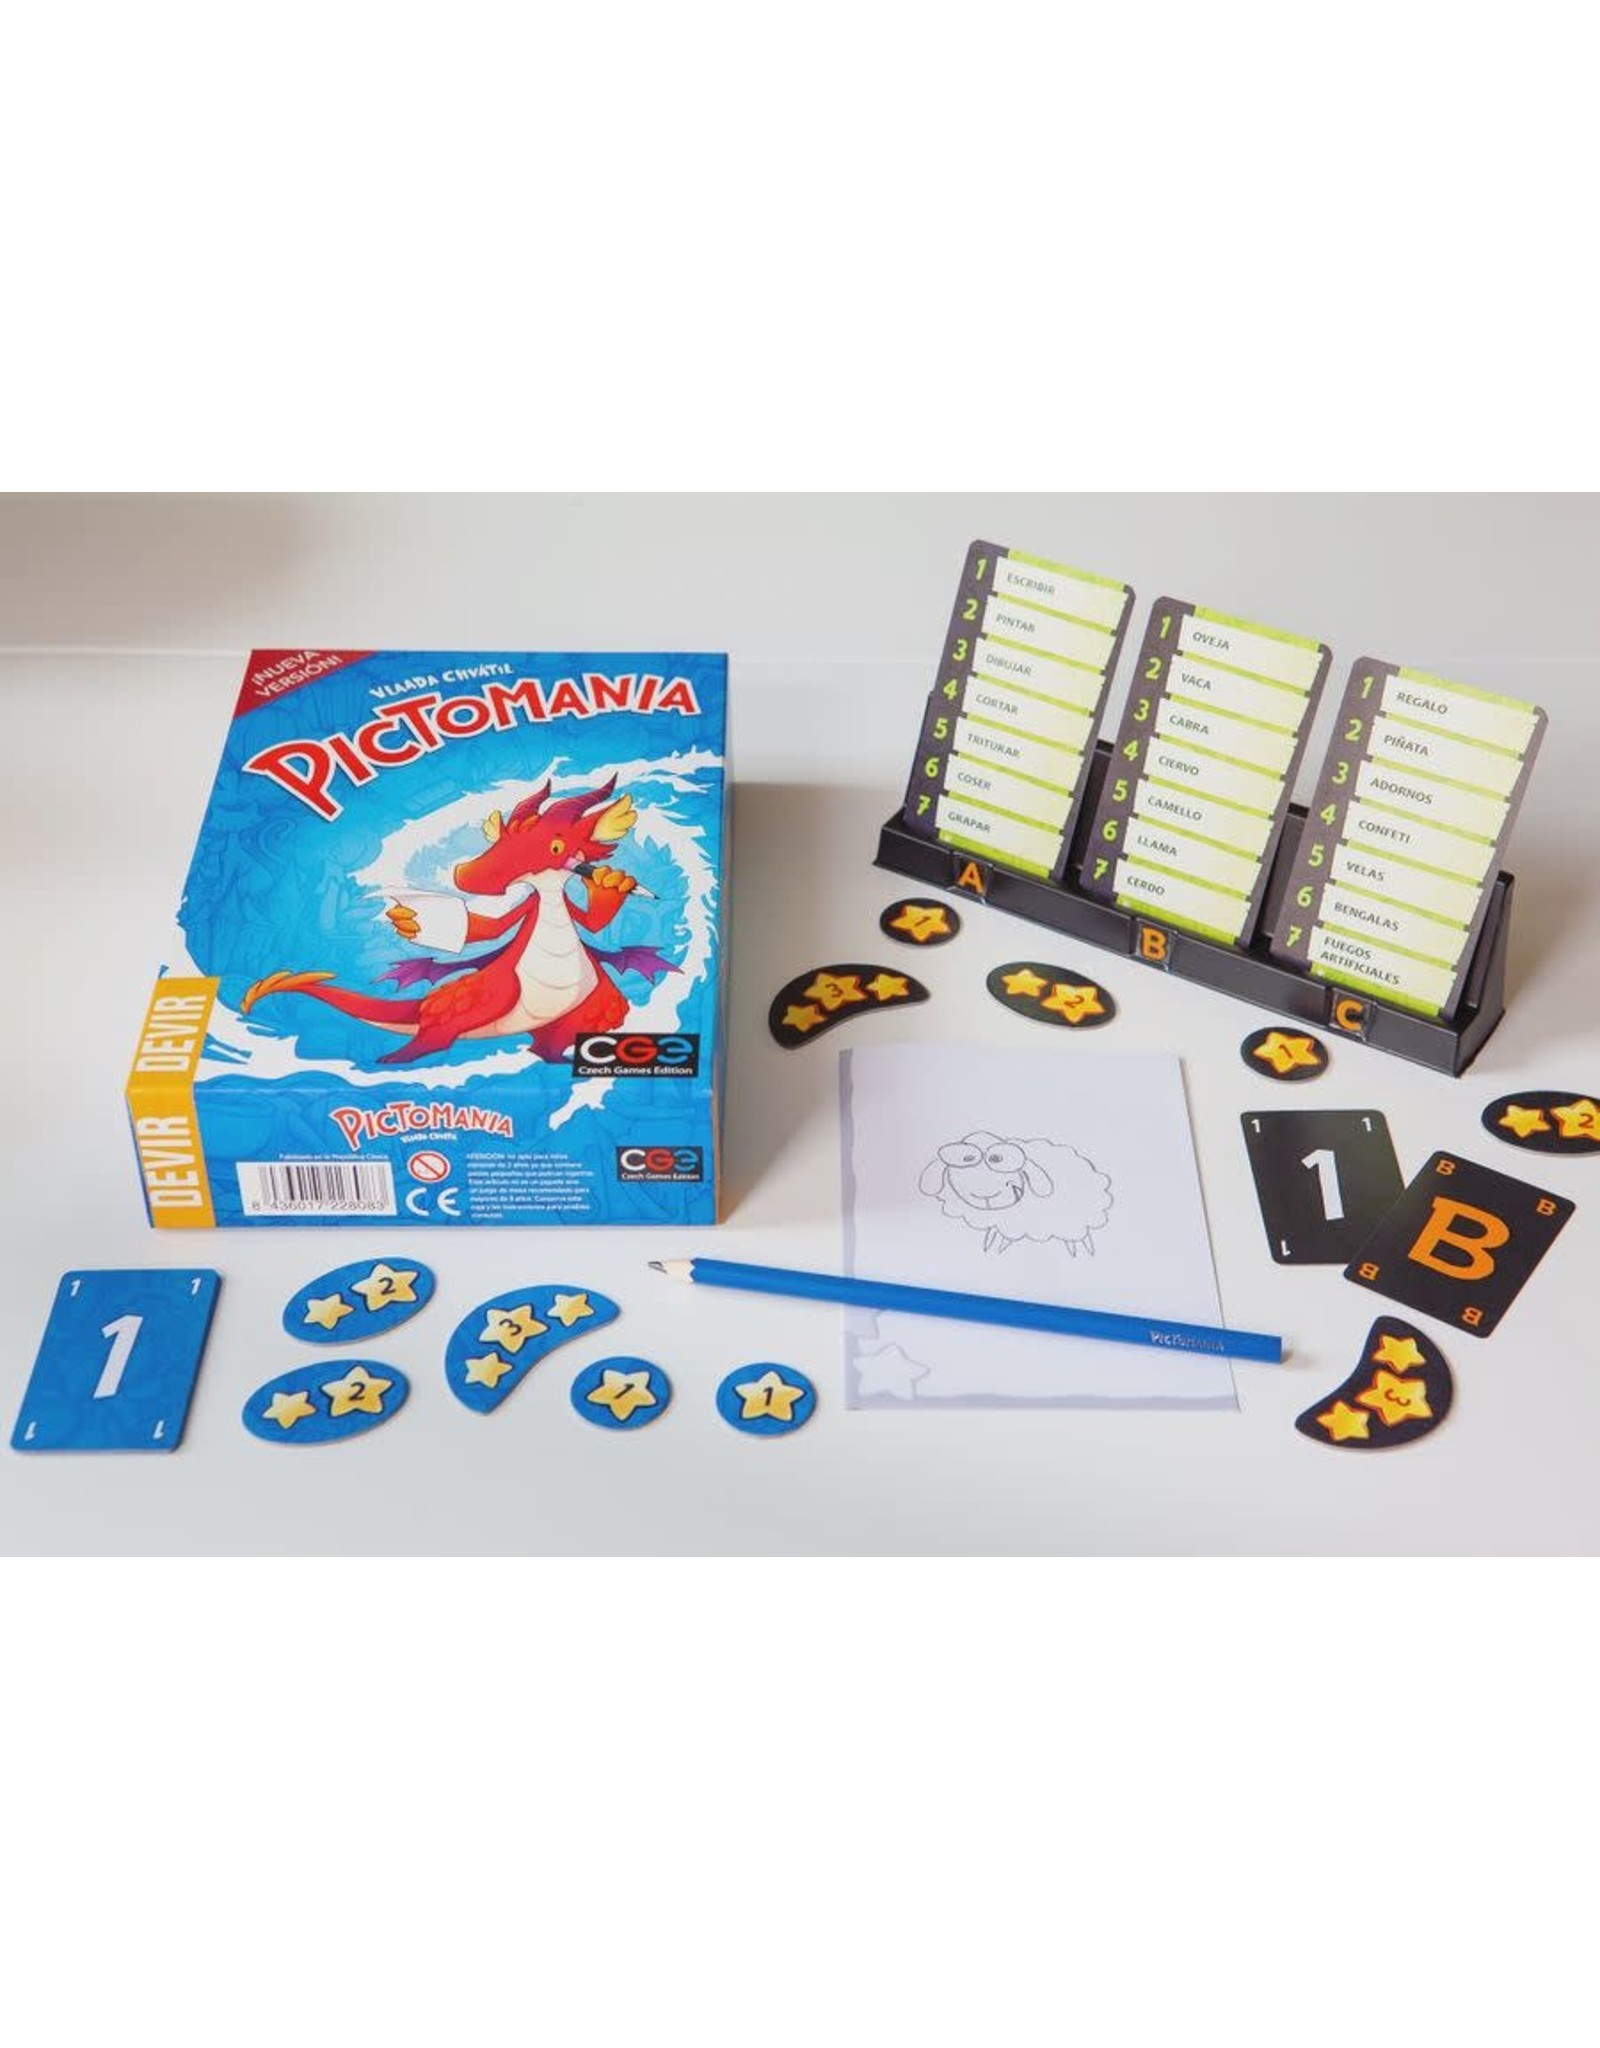 Czech Games Edition CGE: Pictomania